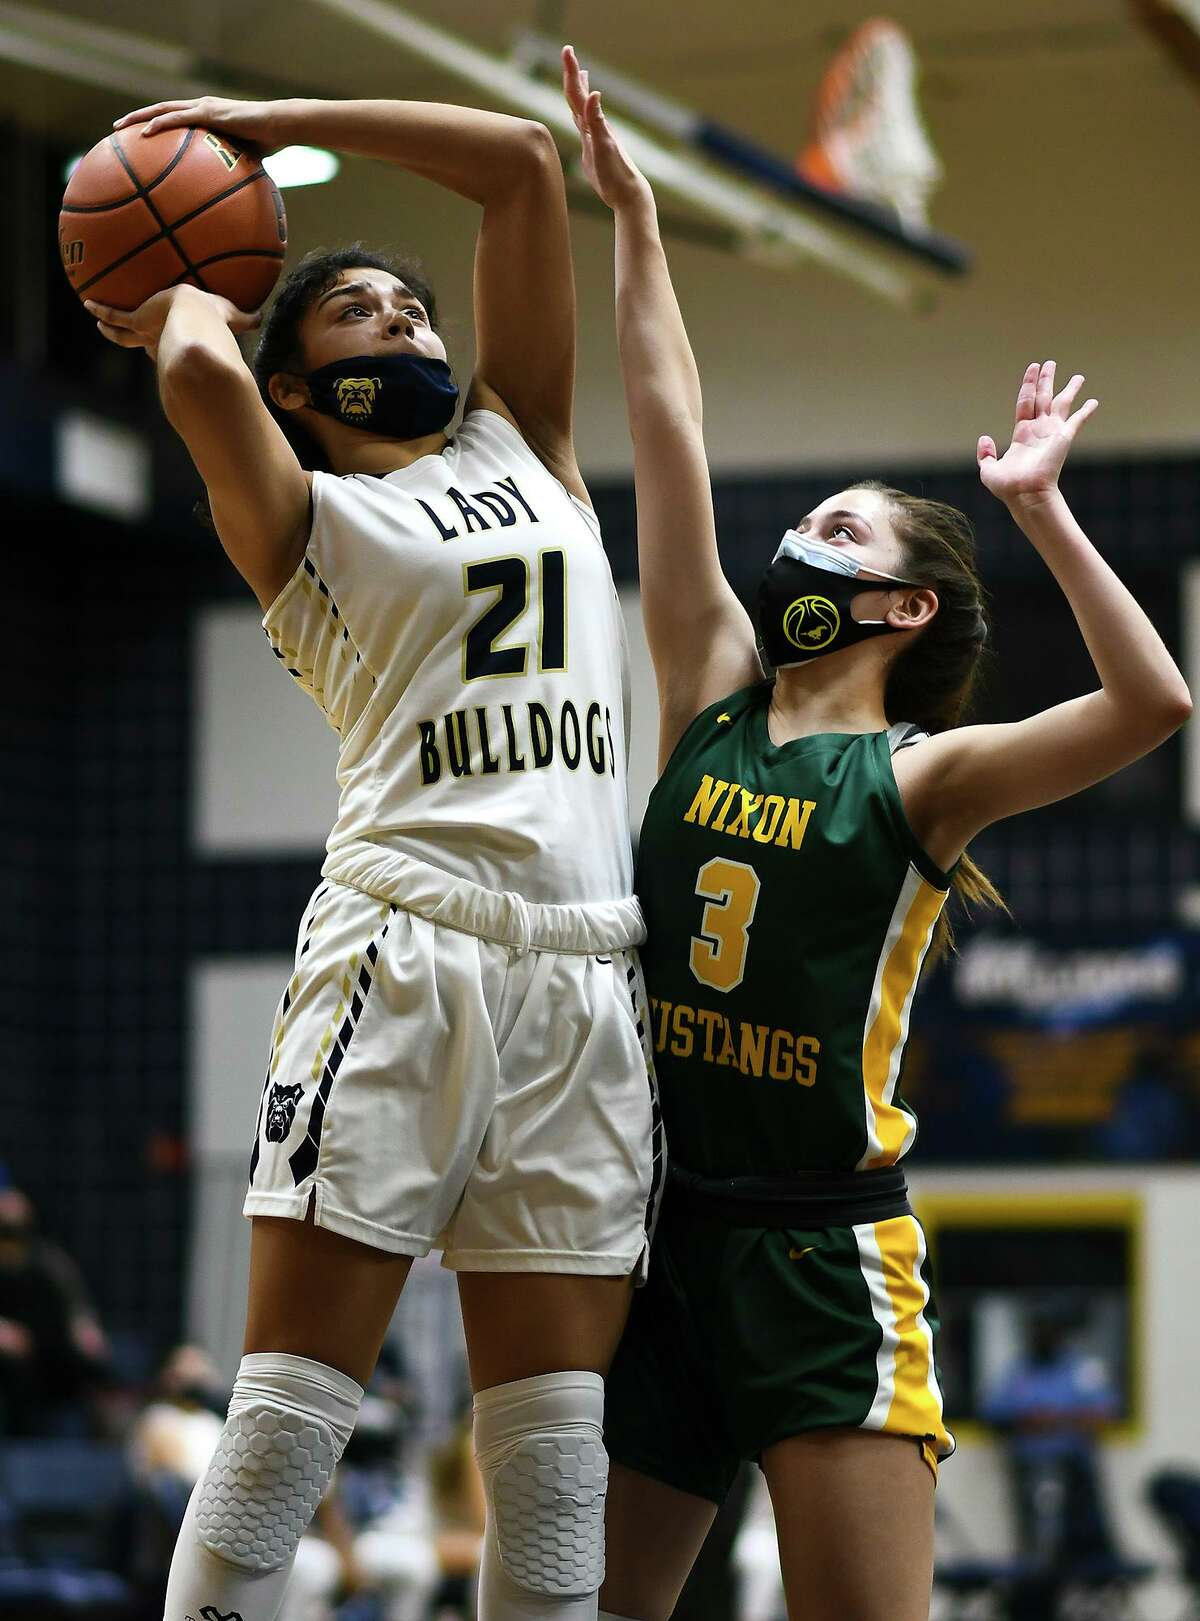 Samantha Carranza scored a game-high 26 points Tuesday in Alexander's 65-33 win at home over Dominique Lecea and Nixon.